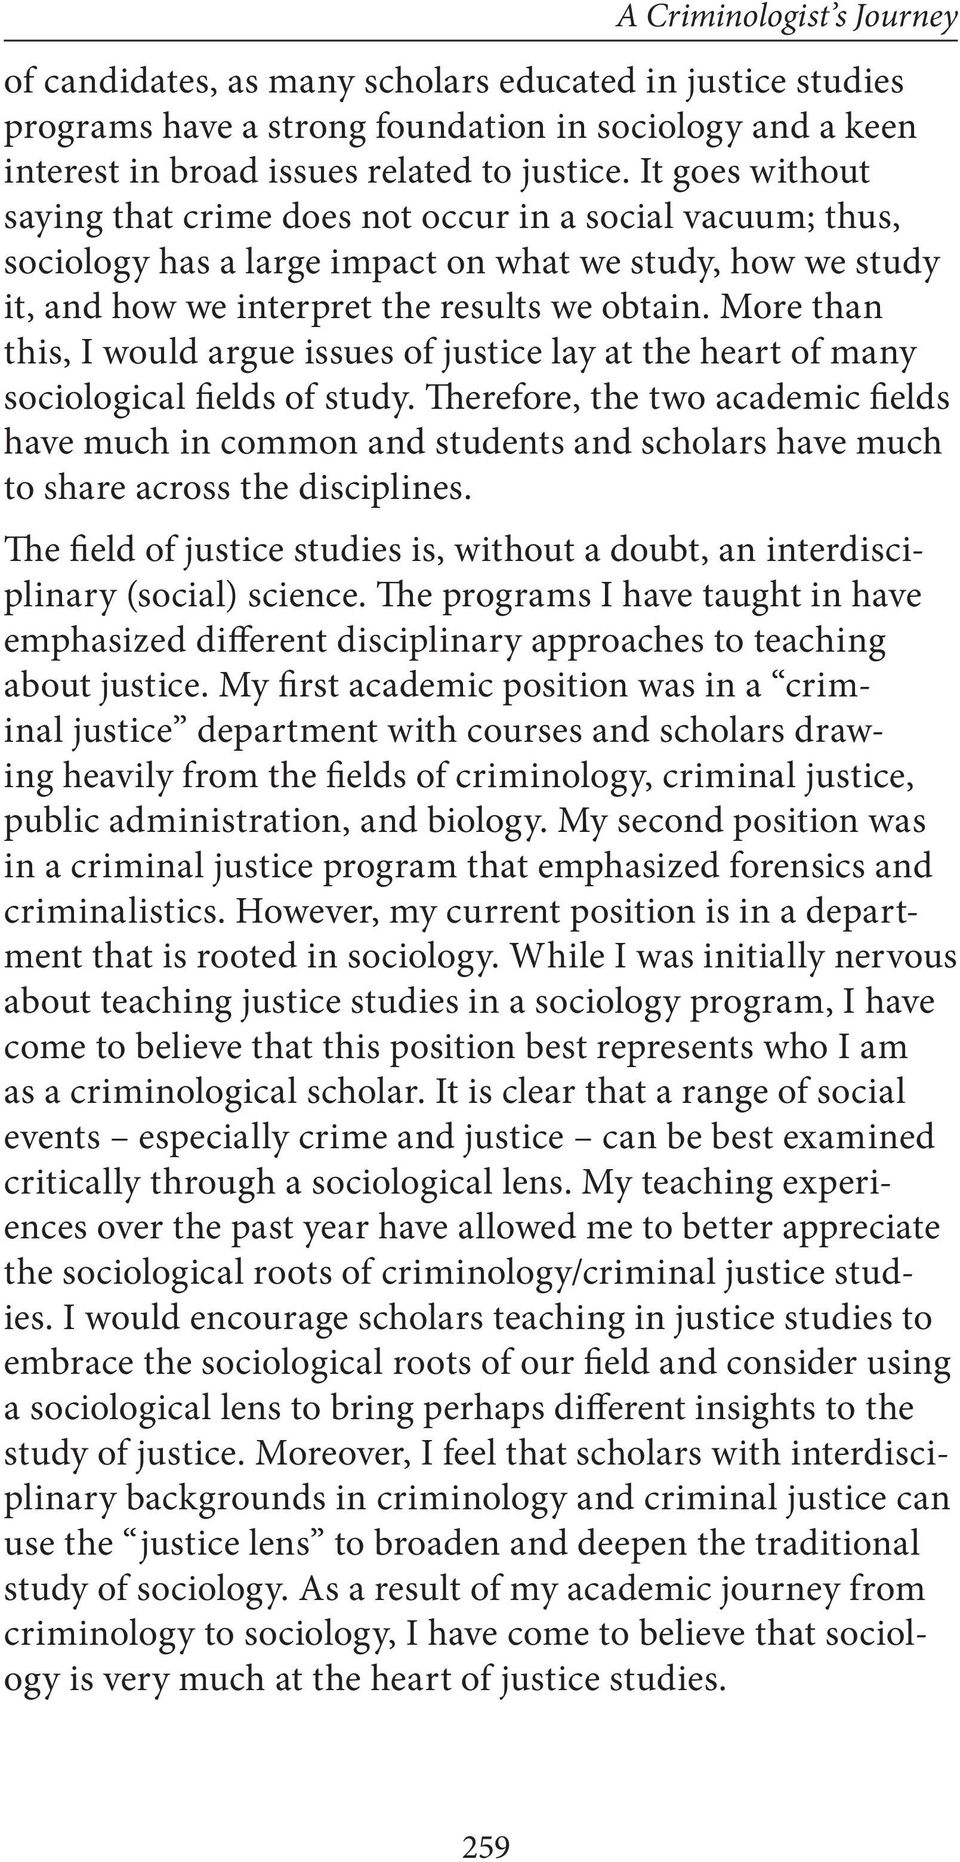 More than this, I would argue issues of justice lay at the heart of many sociological fields of study.